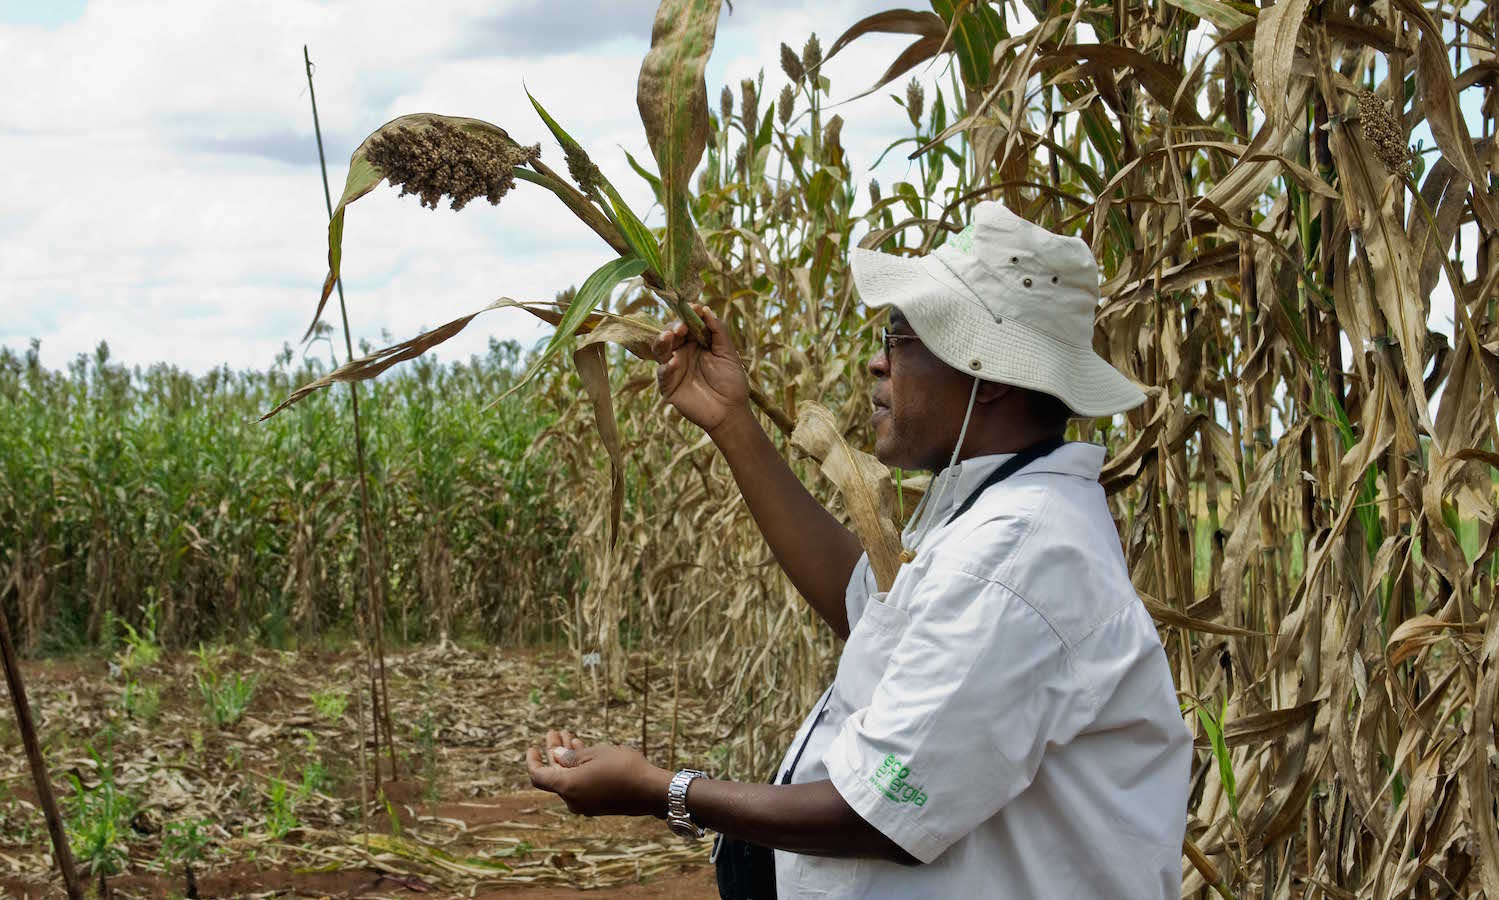 Crop breeders use innovative technologies to fight the threat of hunger and malnutrition in the developing world.